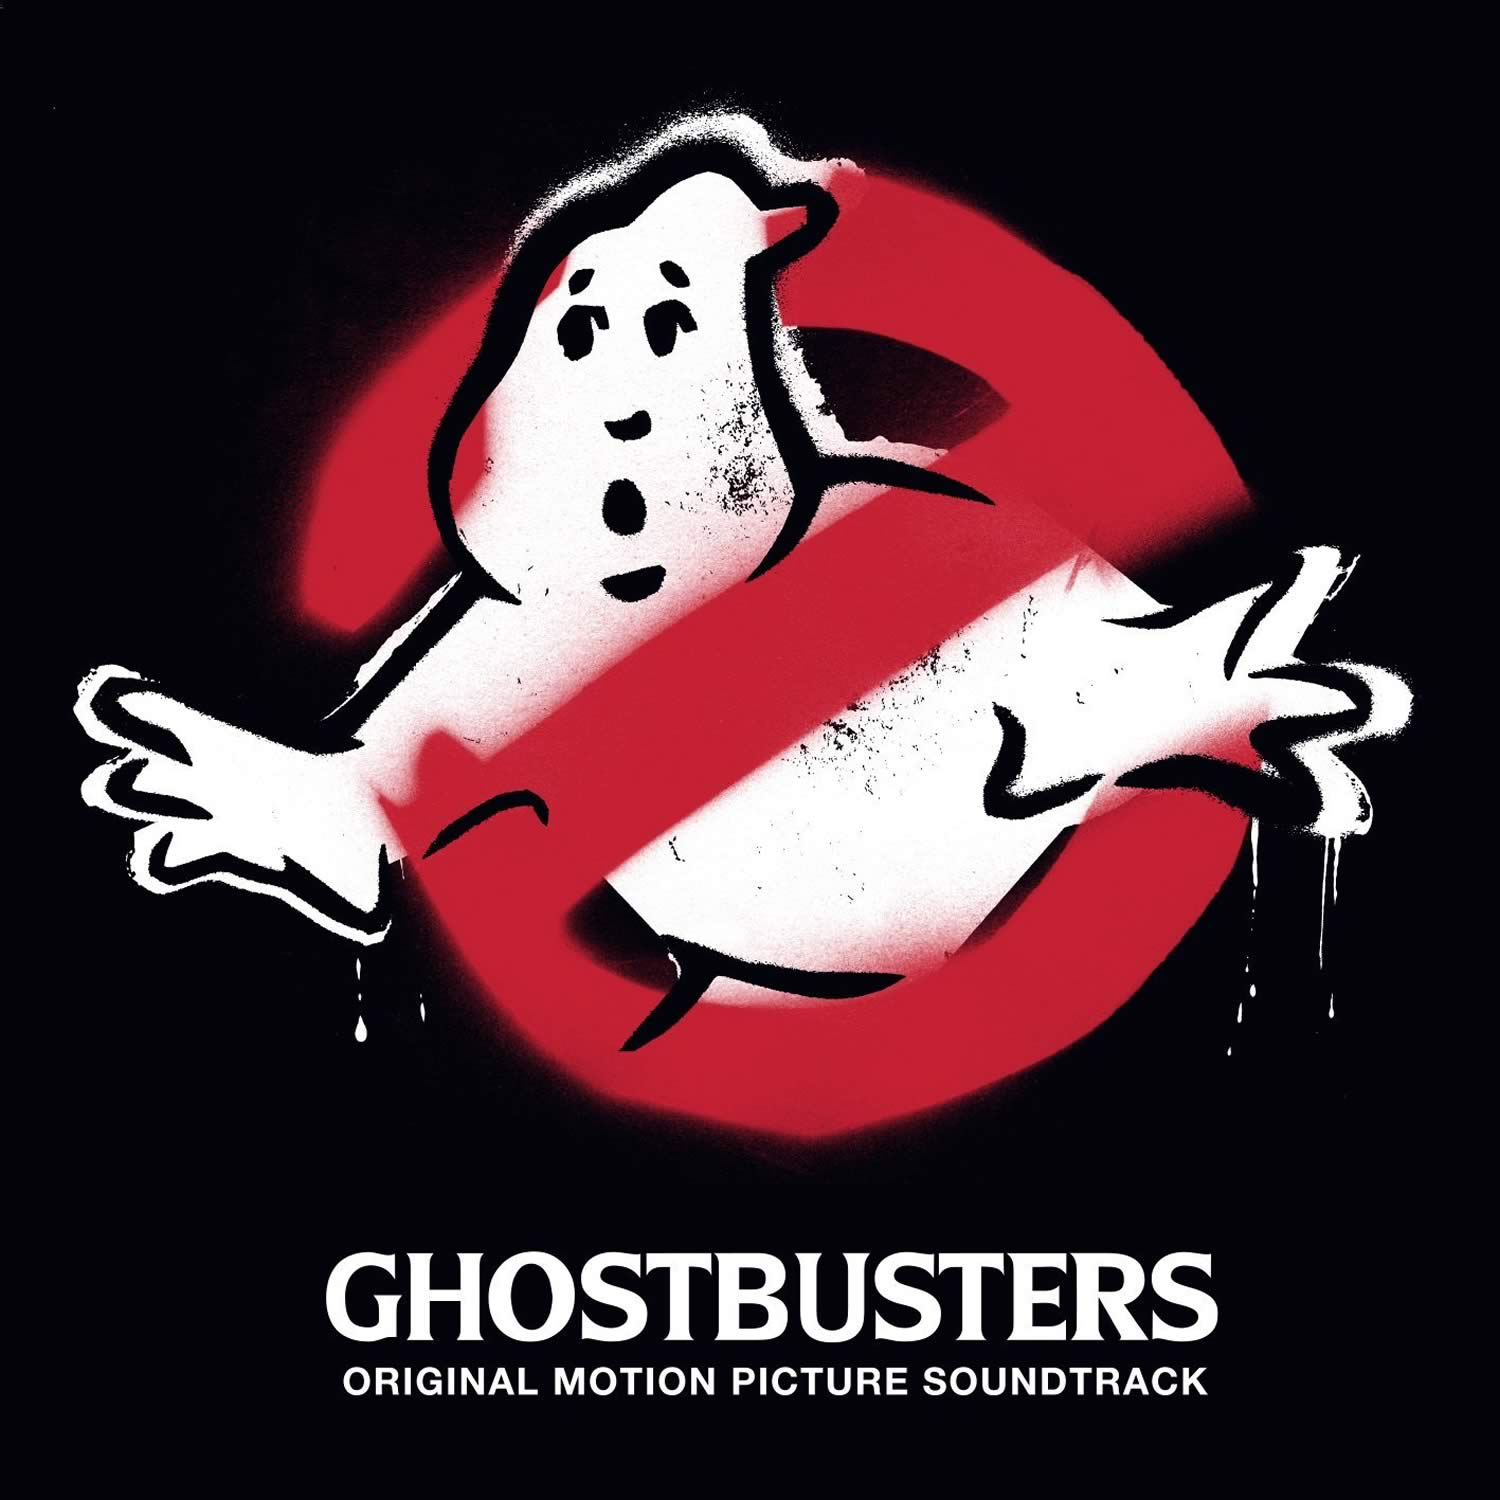 GHOSTBUSTERS - THE ORIGINAL MOTION PICTURE SOUNDTRACK (AUDIO CD)